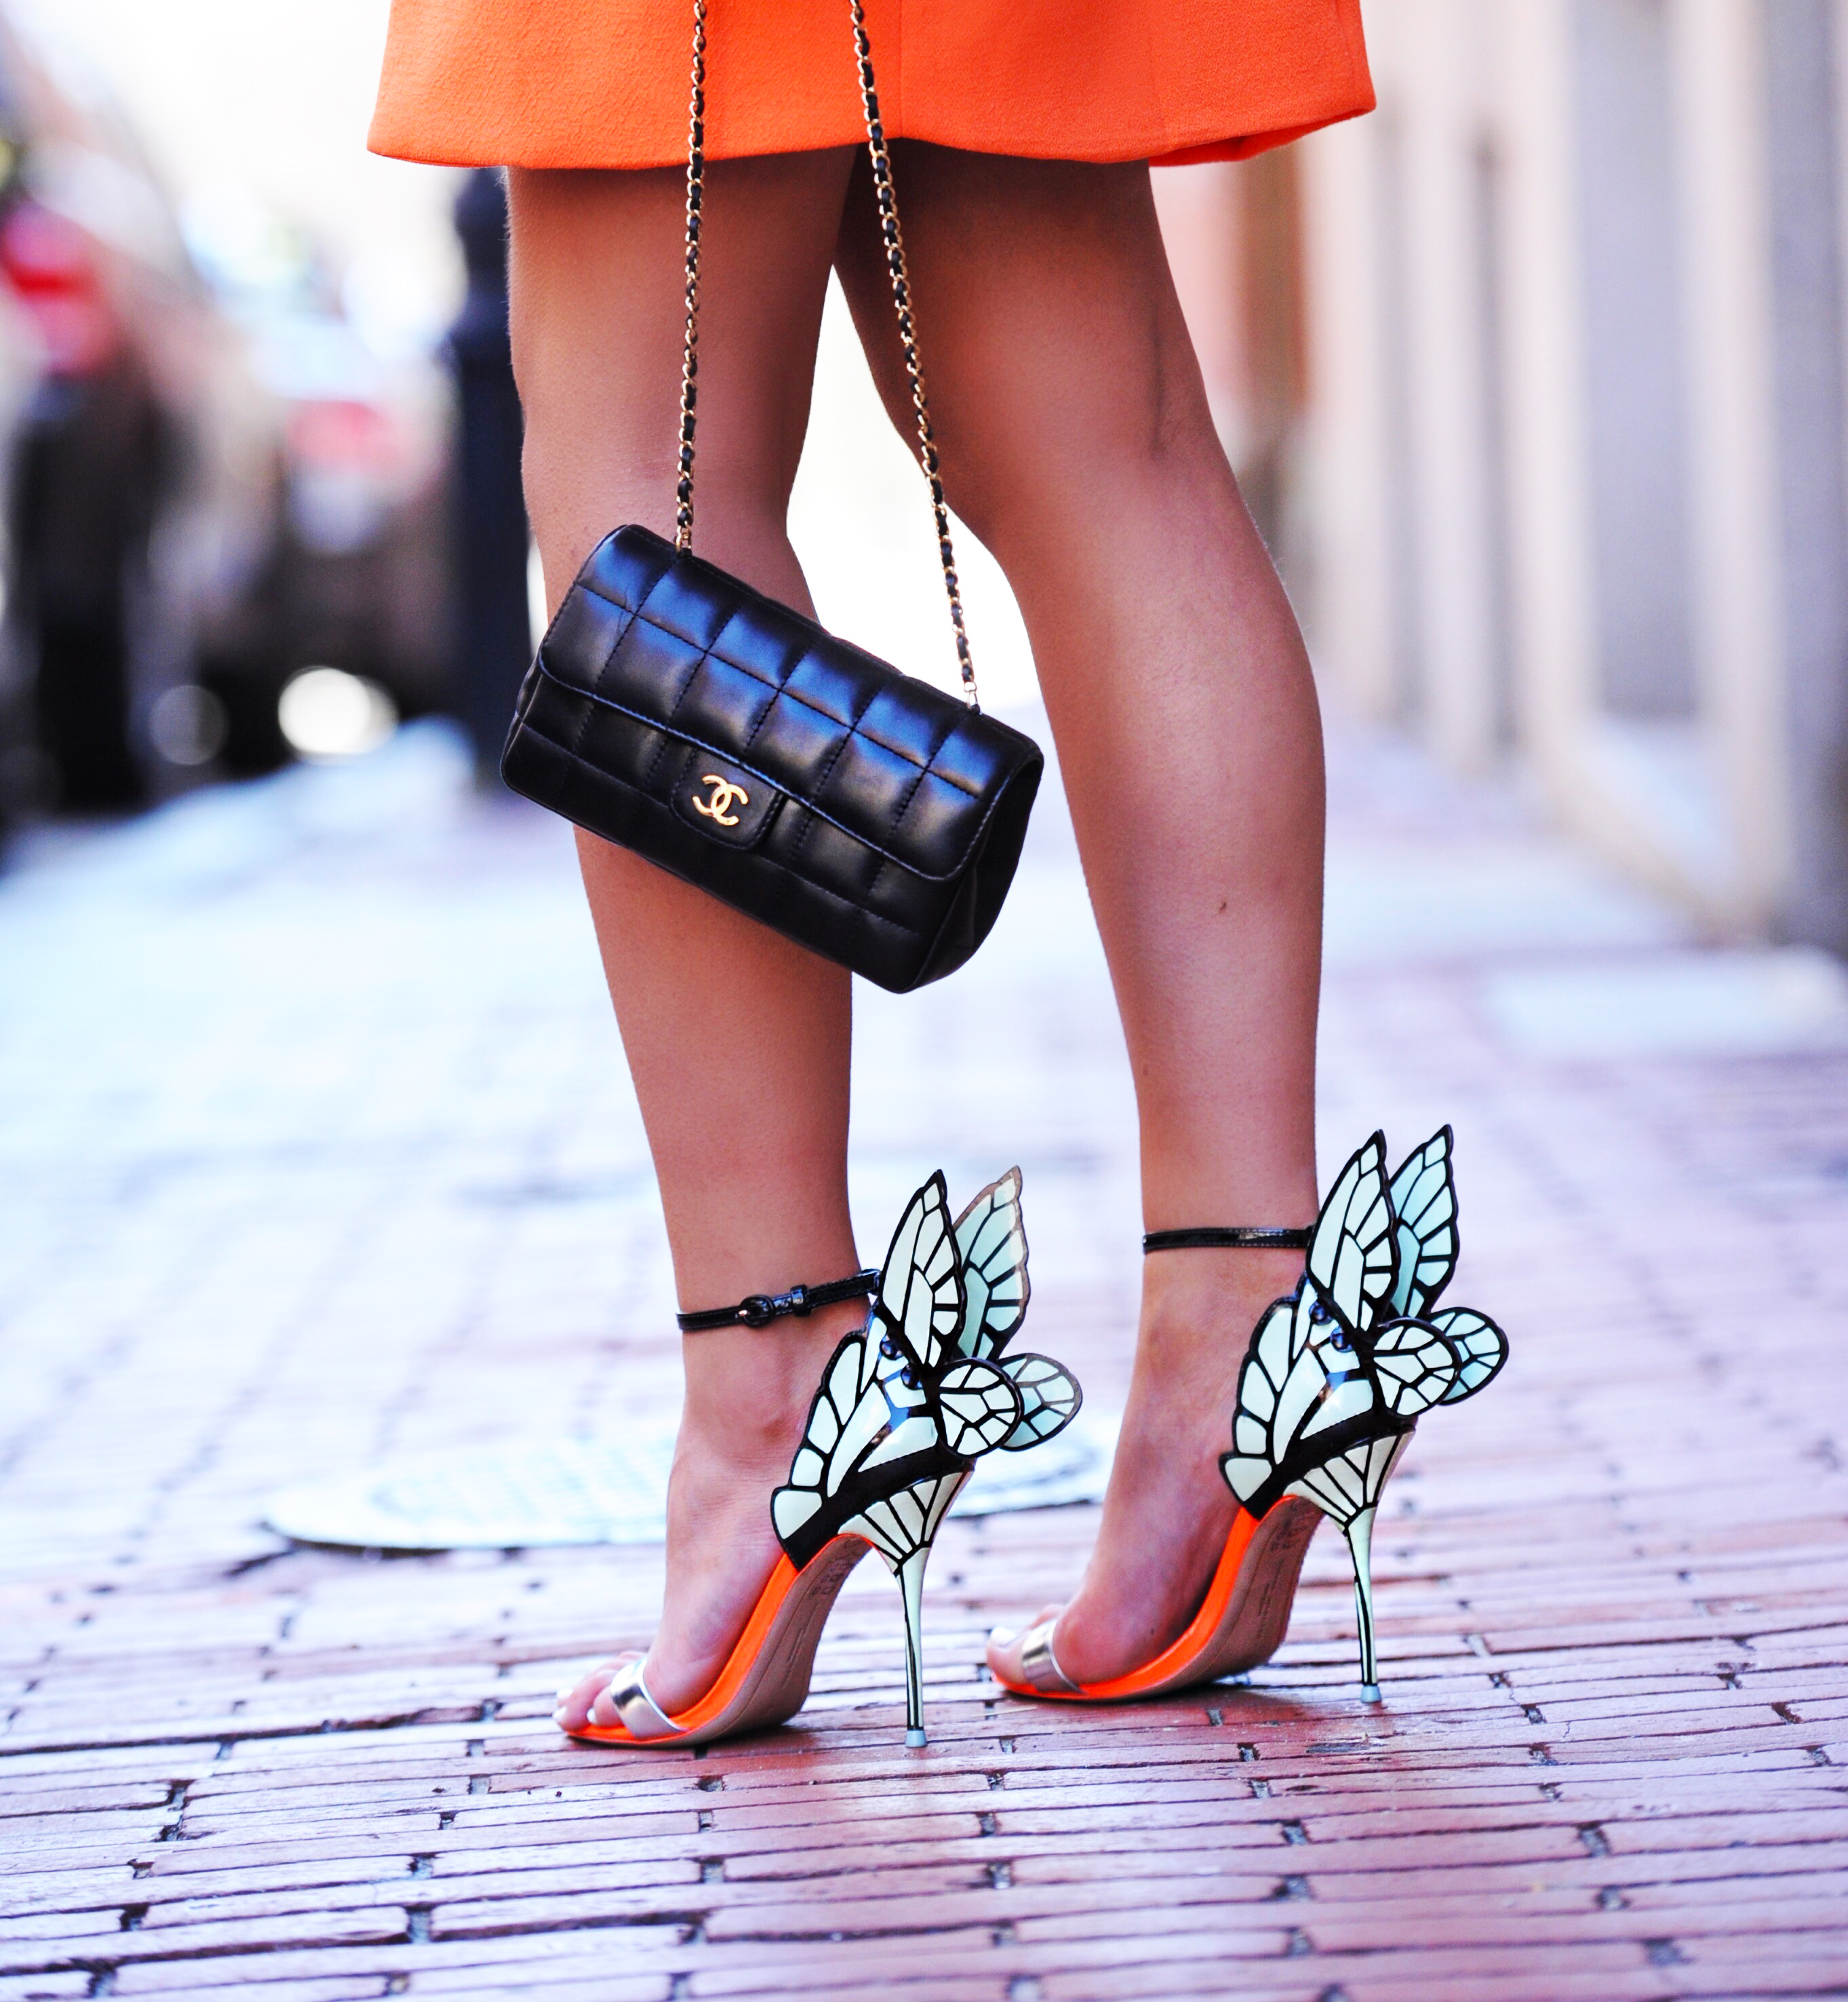 The 6 Designer Shoes That Are Totally Worth The Splurge